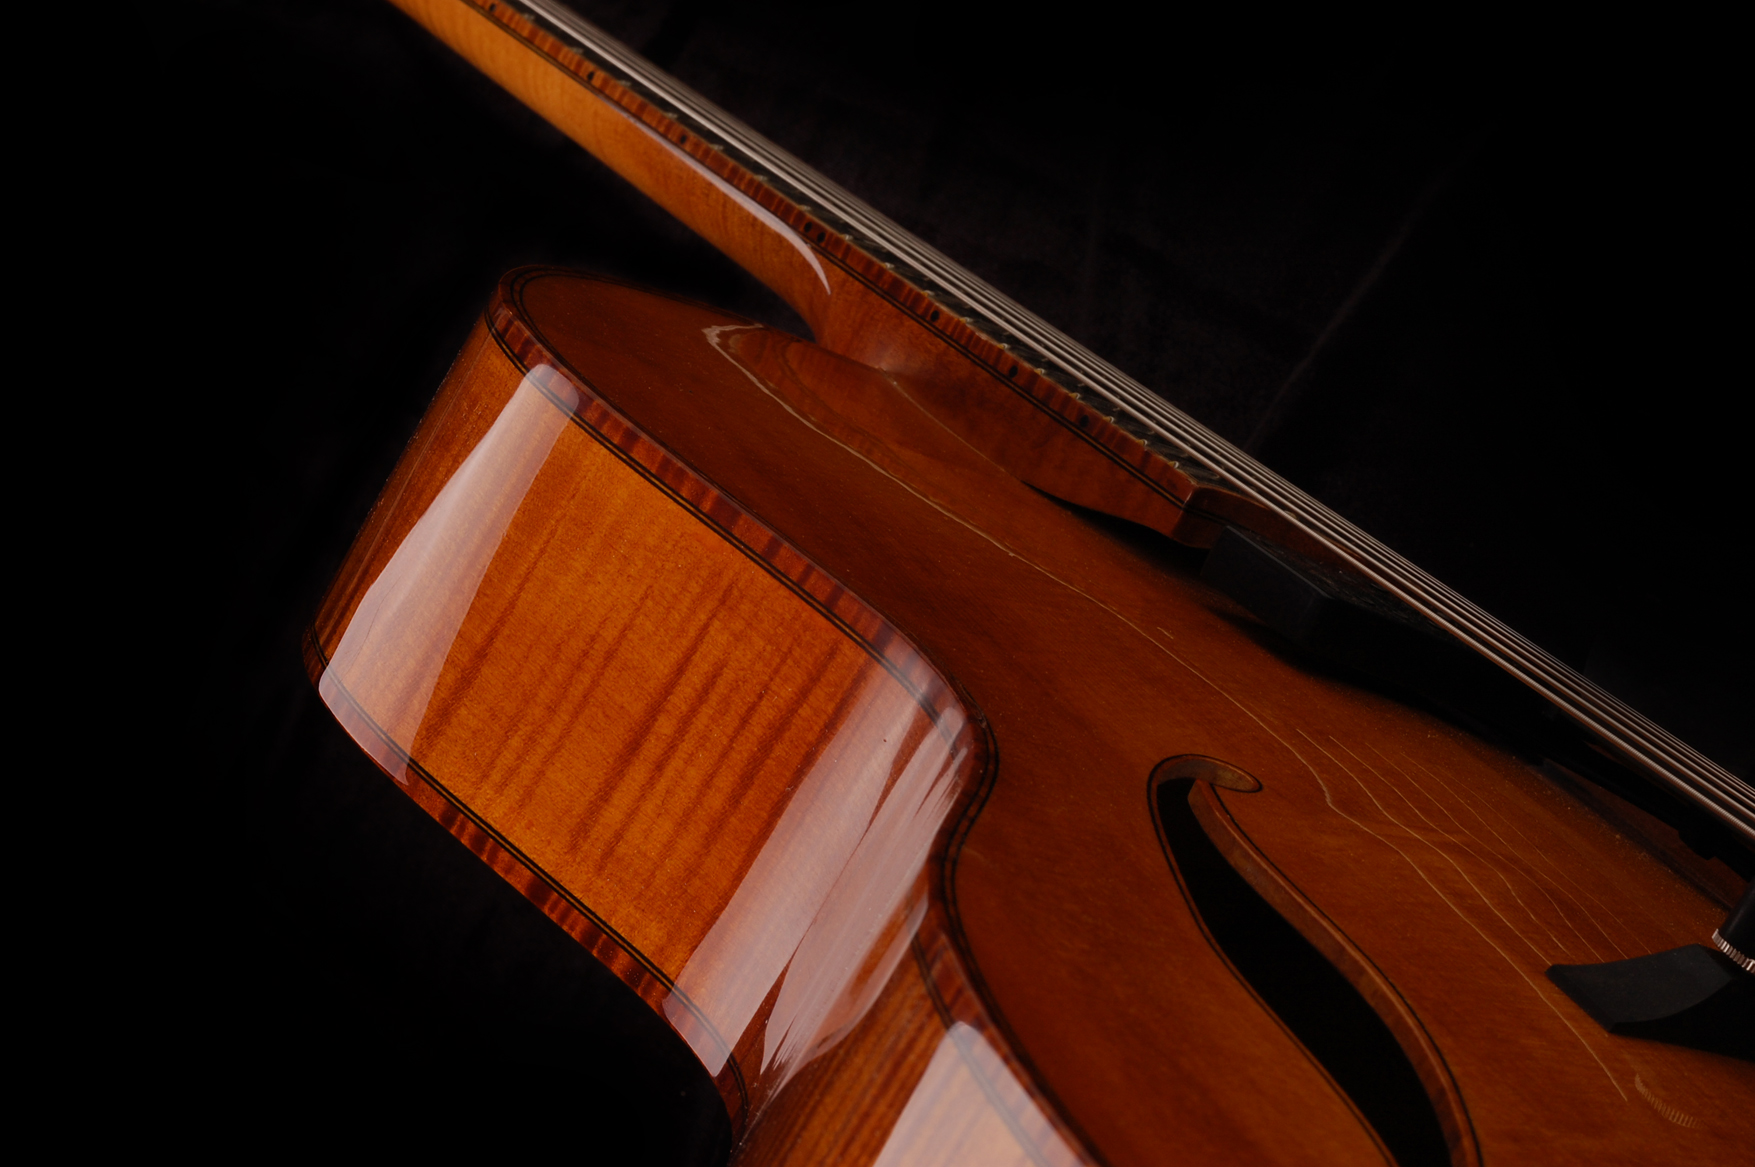 Upper bout and maple neck